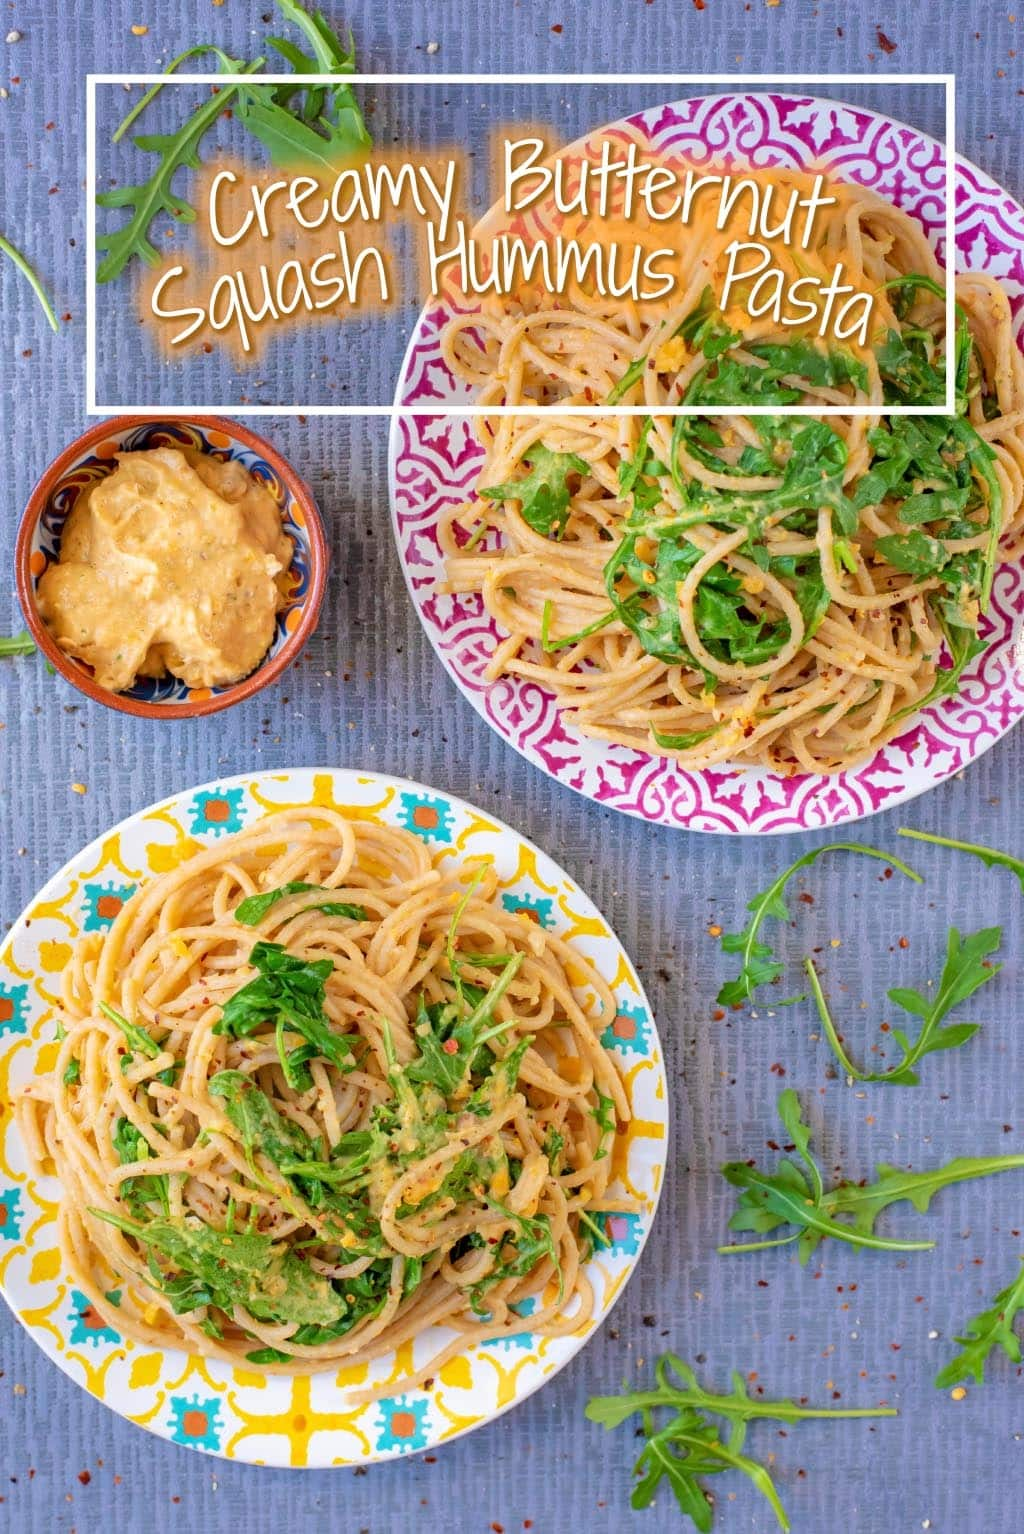 Do you love hummus and want a quick and easy dinner? This Creamy Butternut Squash Hummus Pasta is for you! Make a batch of our Roasted Butternut Squash Hummus and then use some of the leftovers to stir in to pasta with some greens for a healthy meal under 15 minutes. Trust me on this one - hummus makes an incredible pasta sauce. #hummus #butternutsquash #pastasauce